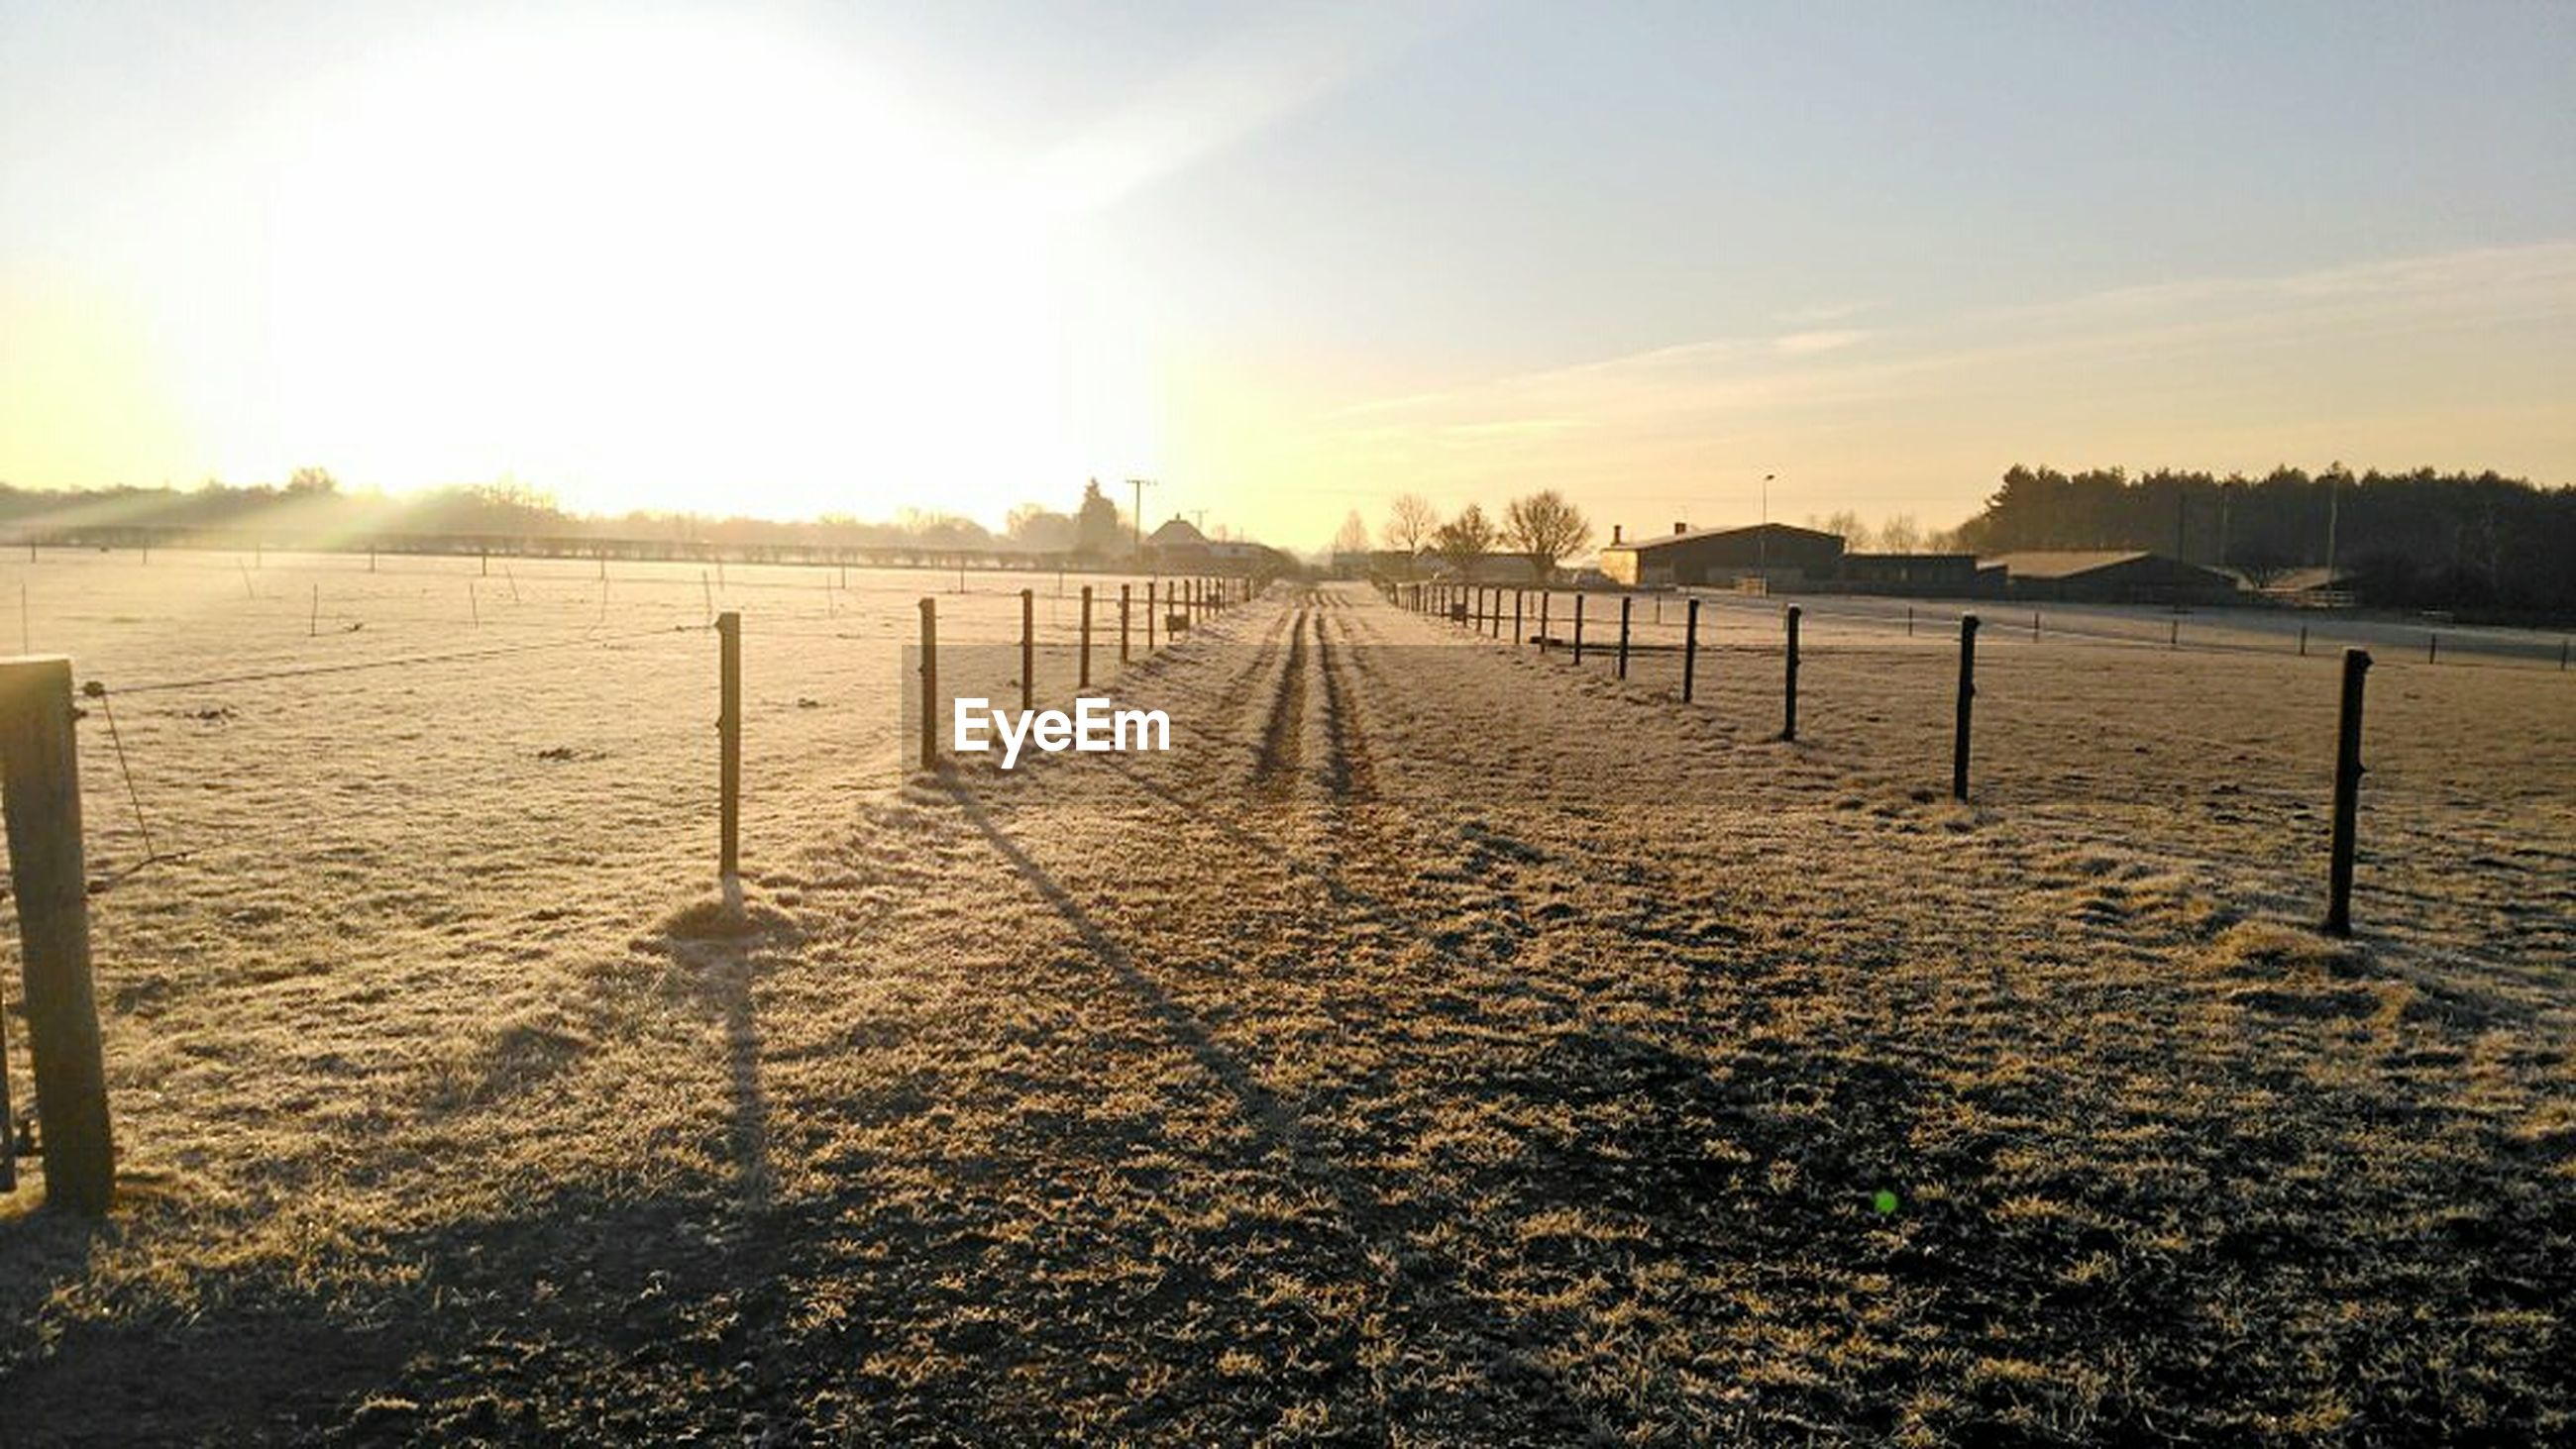 sunset, sun, tranquil scene, tranquility, sunlight, scenics, sky, beauty in nature, water, nature, idyllic, fence, sea, wooden post, the way forward, sunbeam, landscape, outdoors, beach, diminishing perspective